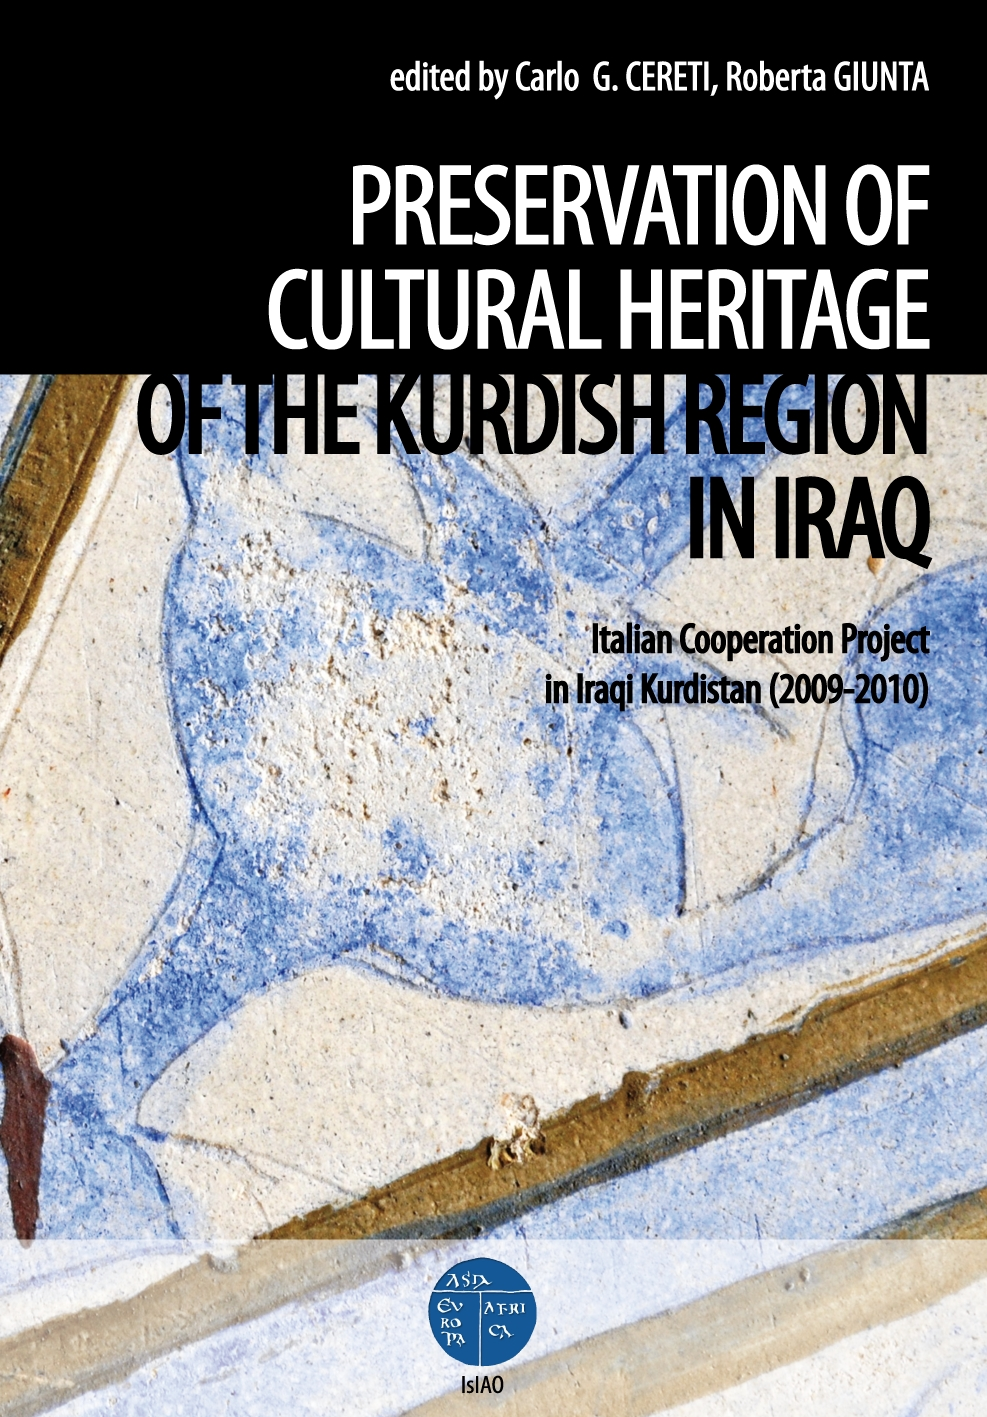 Preservation of Cultural Heritage of the Kurdish Region in Iraq